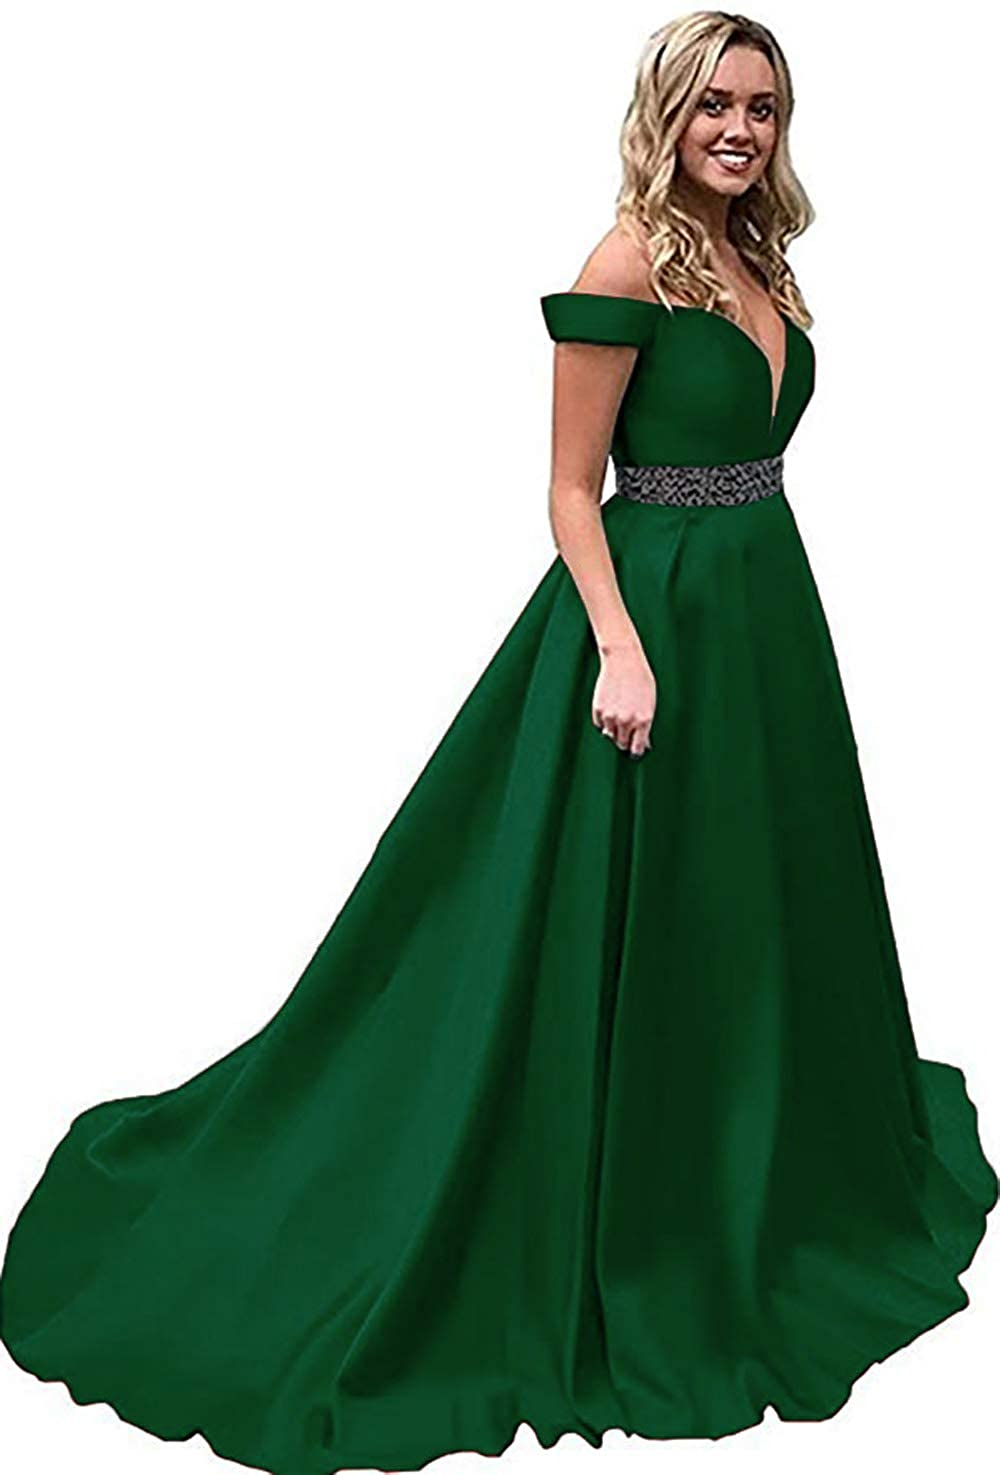 Emerald Green Rmaytiked Womens Off The Shoulder Prom Dresses Long Beaded 2019 Satin A Line Formal Evening Ball Gowns with Pockets